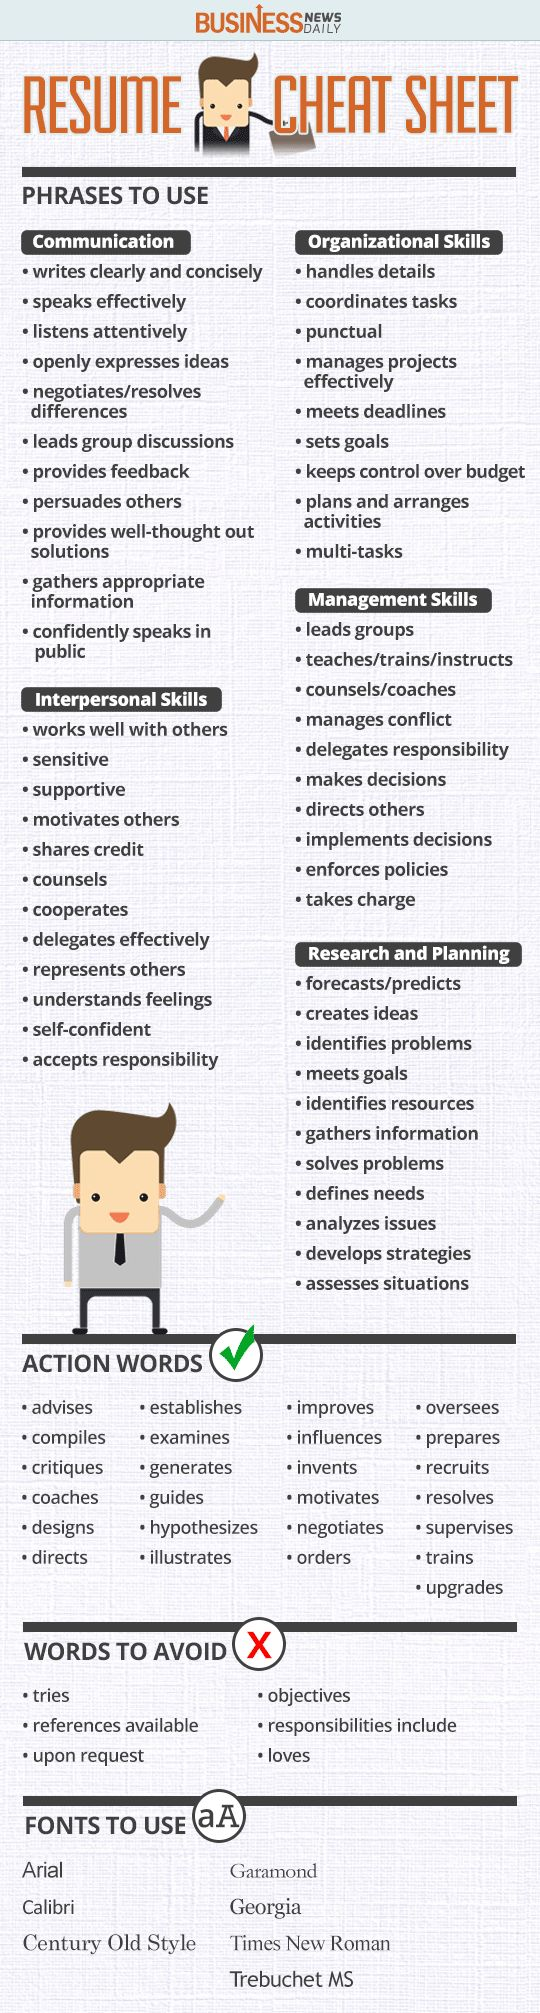 Opposenewapstandardsus  Sweet  Ideas About Resume On Pinterest  Cv Format Resume  With Remarkable Resume Cheat Sheet Infographic Andrews Almost Done With A Complete Unit On Employment Which With Beauteous Entry Level It Resume With No Experience Also Job Title On Resume In Addition Resume Examples For High School Student And New Cna Resume As Well As Best Resume Style Additionally How To Send A Resume Through Email From Pinterestcom With Opposenewapstandardsus  Remarkable  Ideas About Resume On Pinterest  Cv Format Resume  With Beauteous Resume Cheat Sheet Infographic Andrews Almost Done With A Complete Unit On Employment Which And Sweet Entry Level It Resume With No Experience Also Job Title On Resume In Addition Resume Examples For High School Student From Pinterestcom